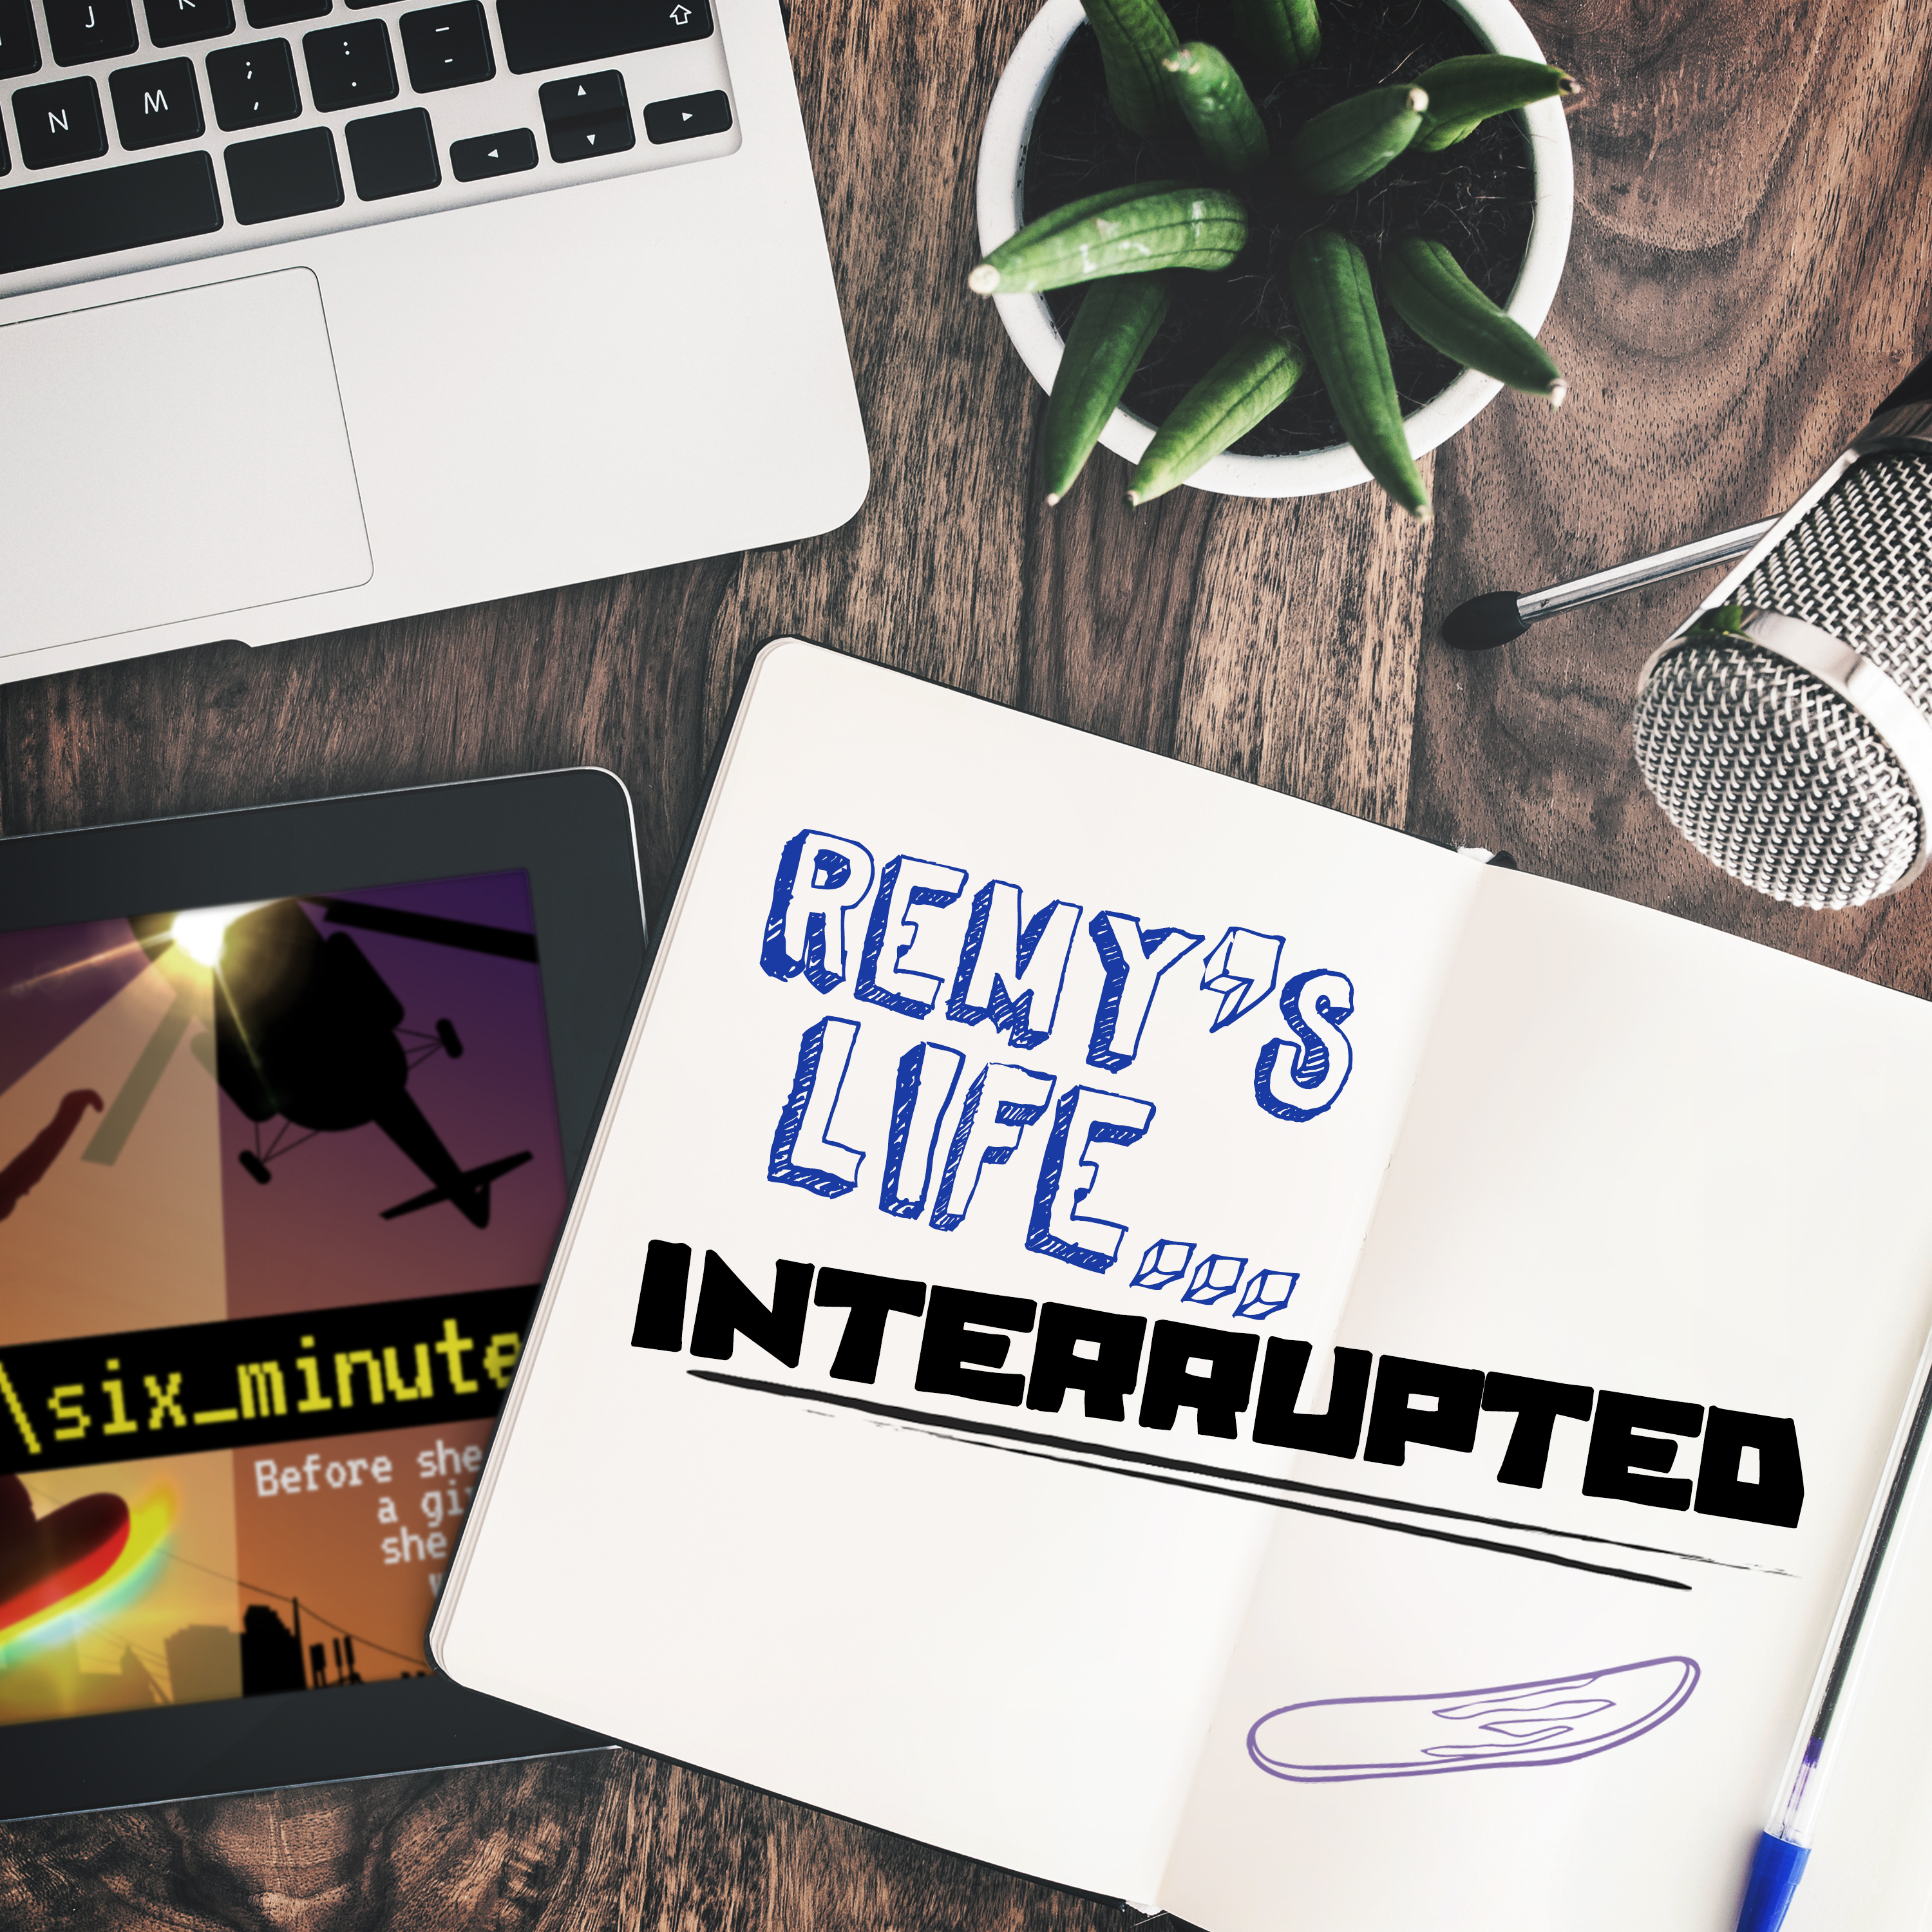 Remy's Life Interrupted: EP81